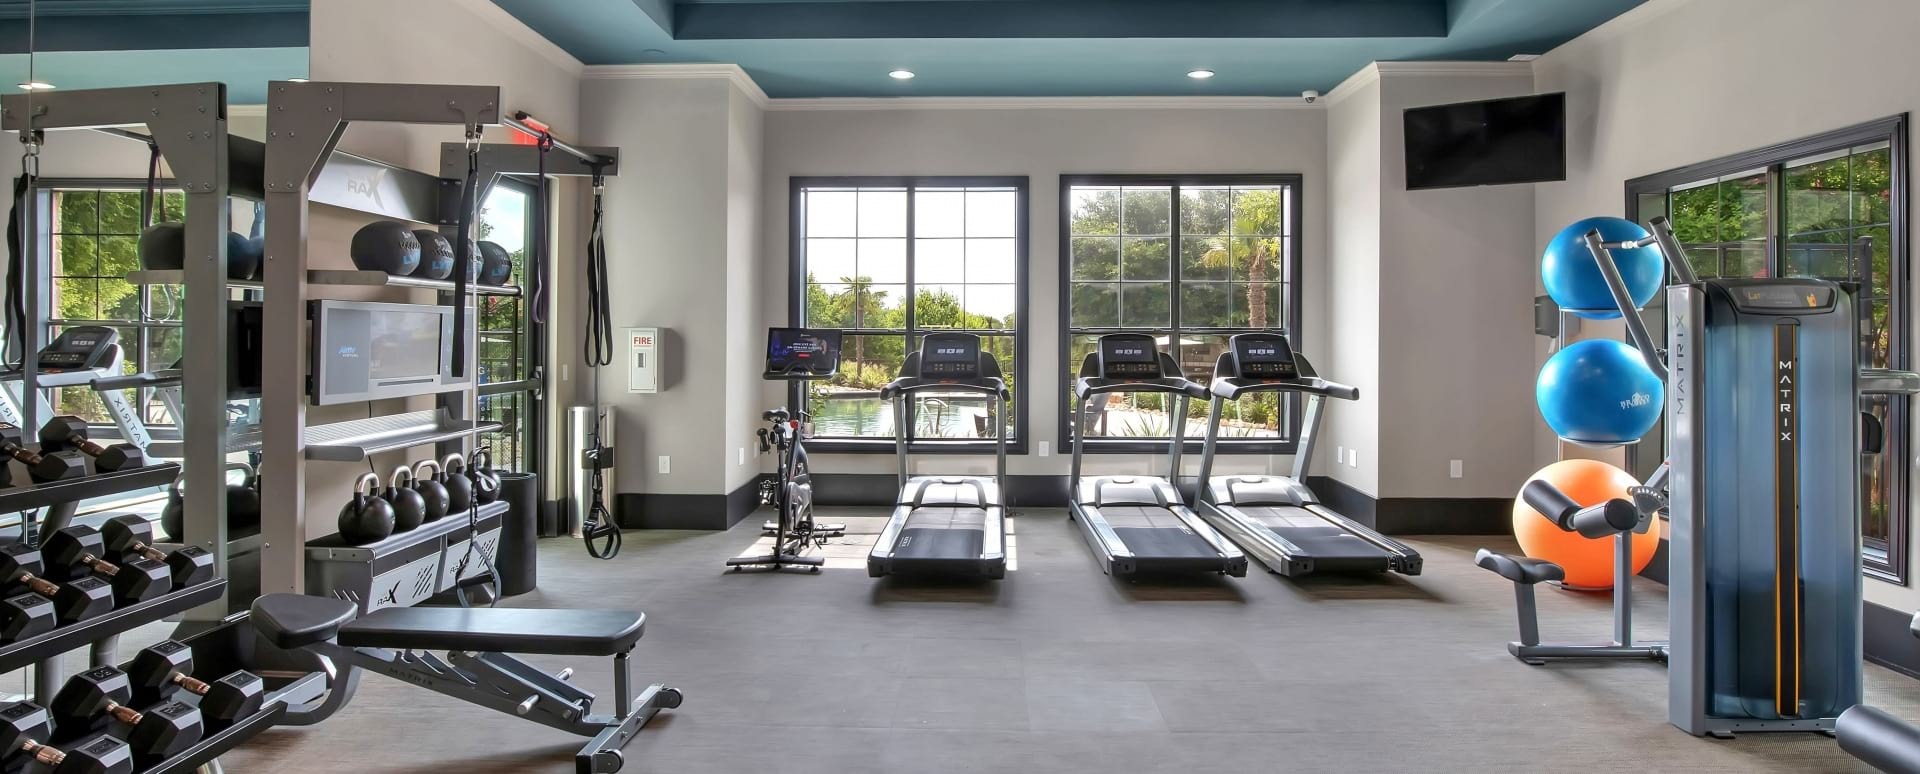 Fitness center at Cortland Southpark Terraces